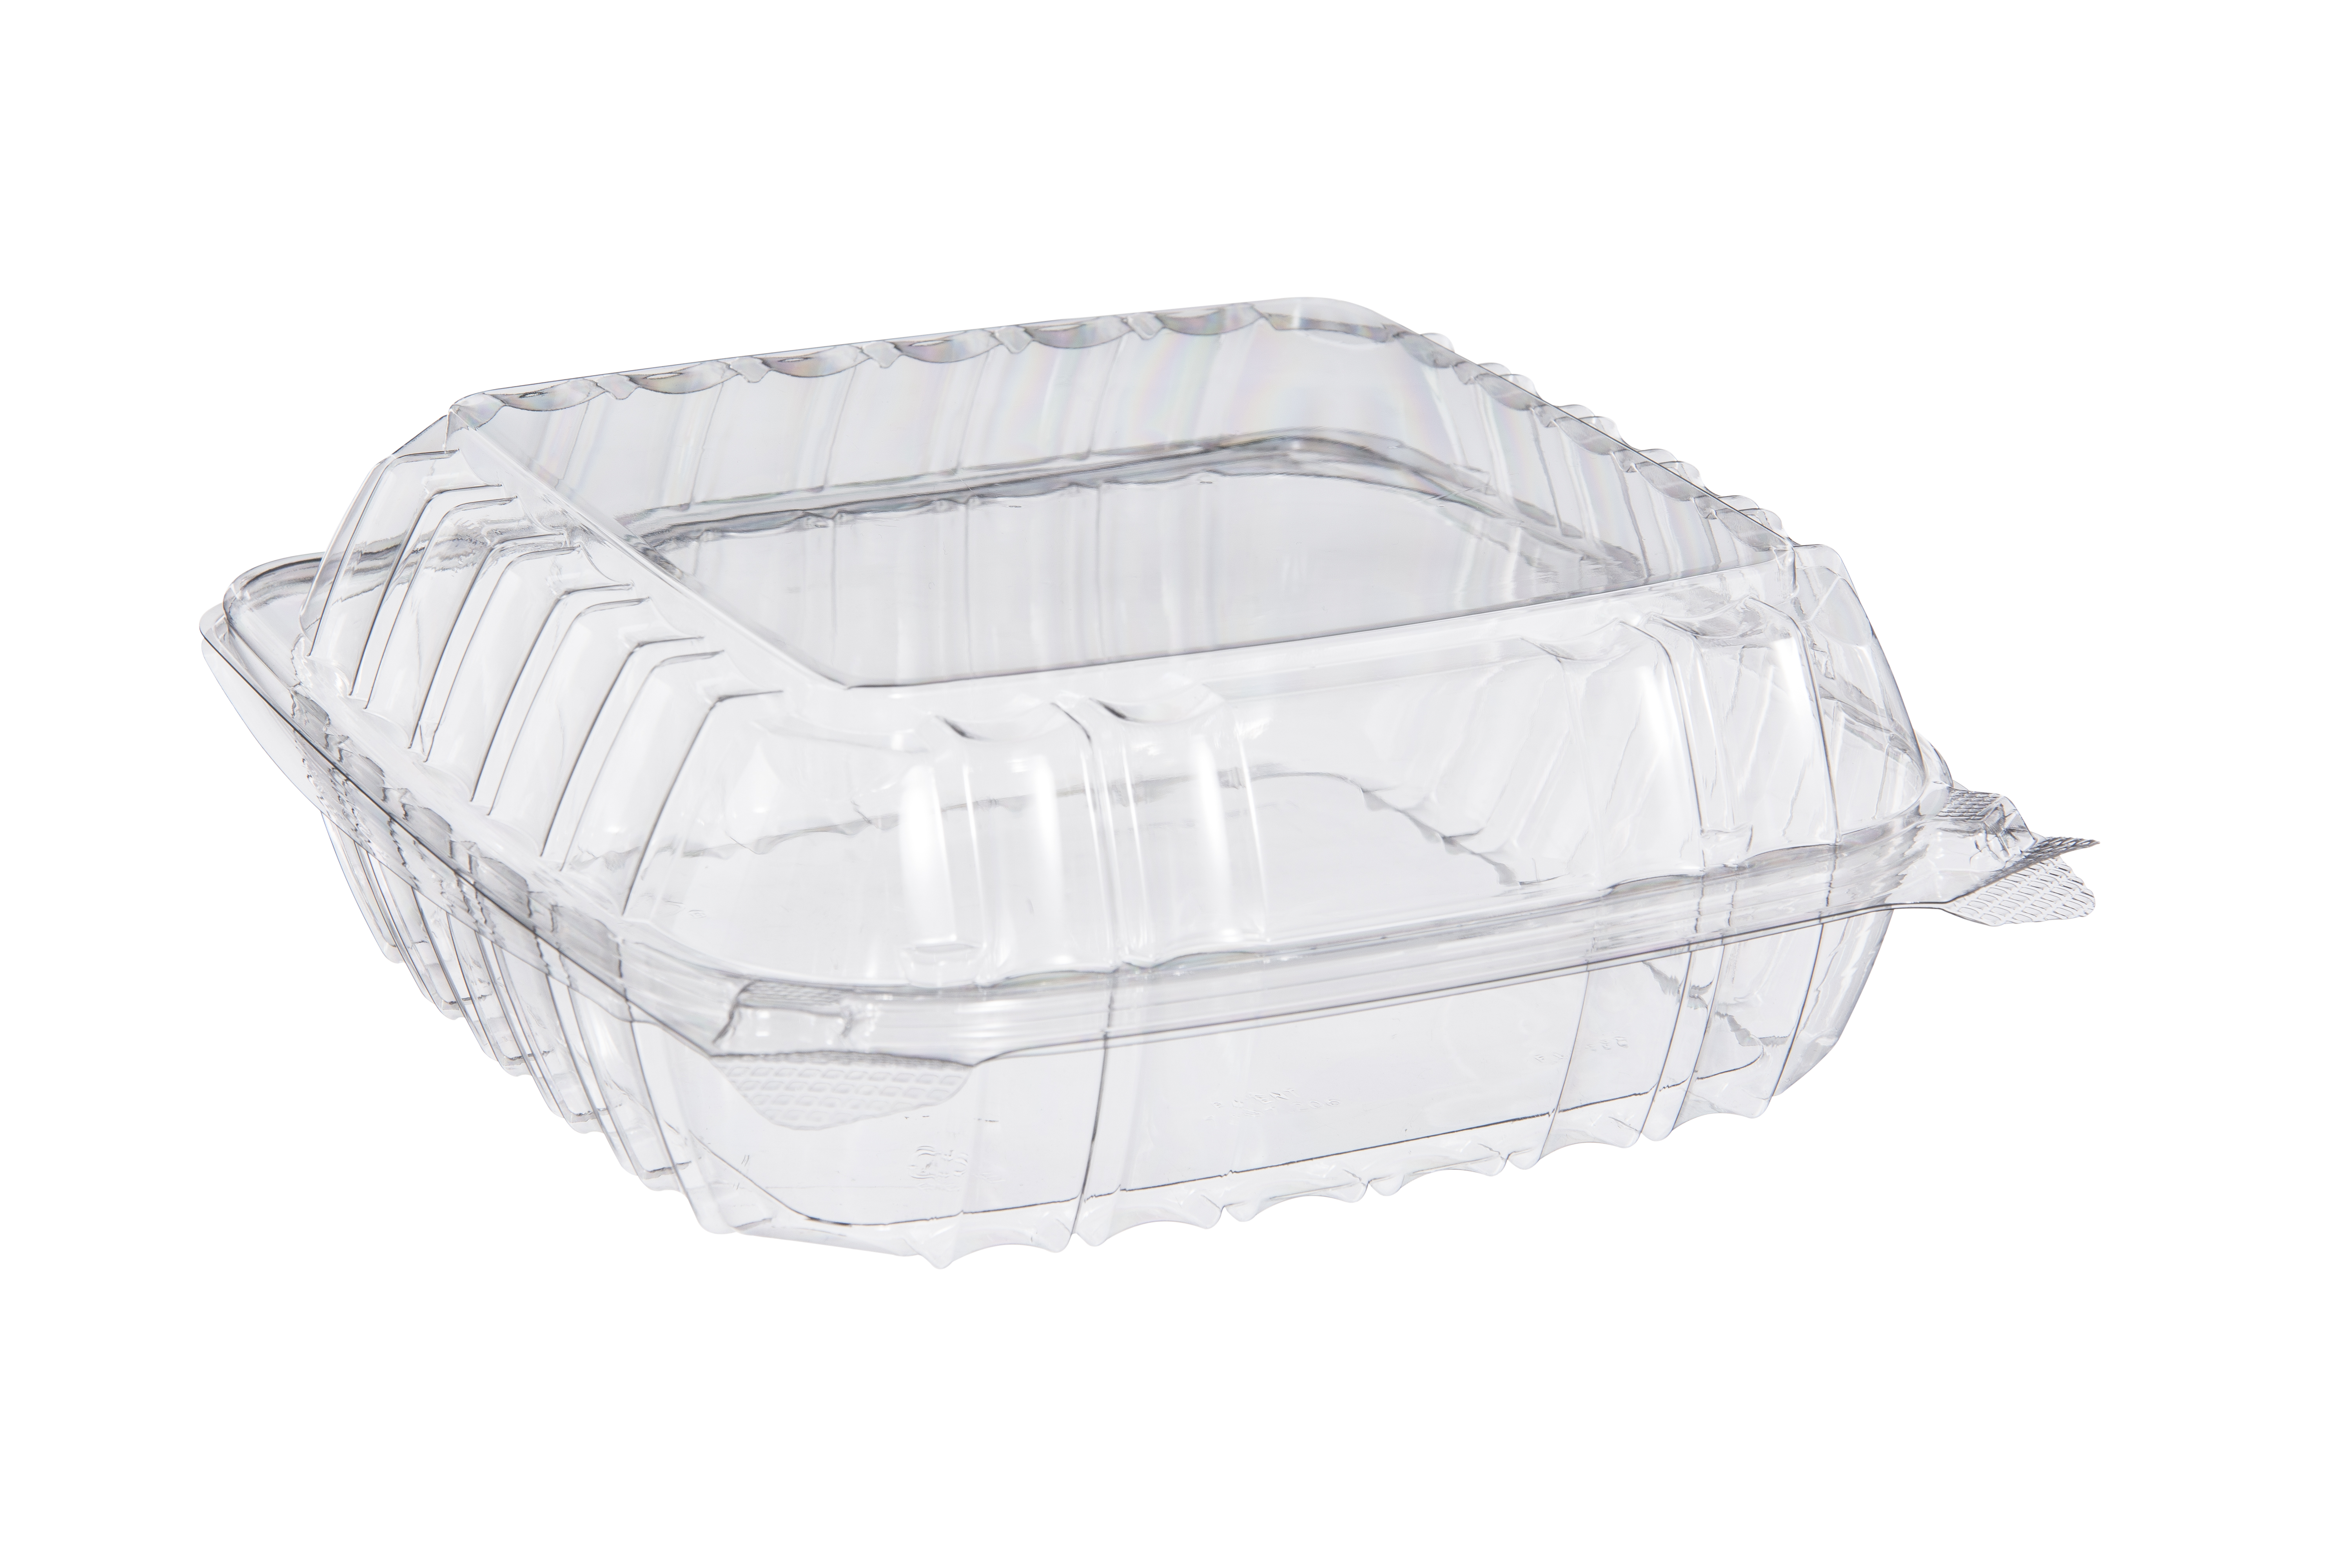 PicturesLogo/FOOD CONTAINERS LIDS CLEAR.jpg